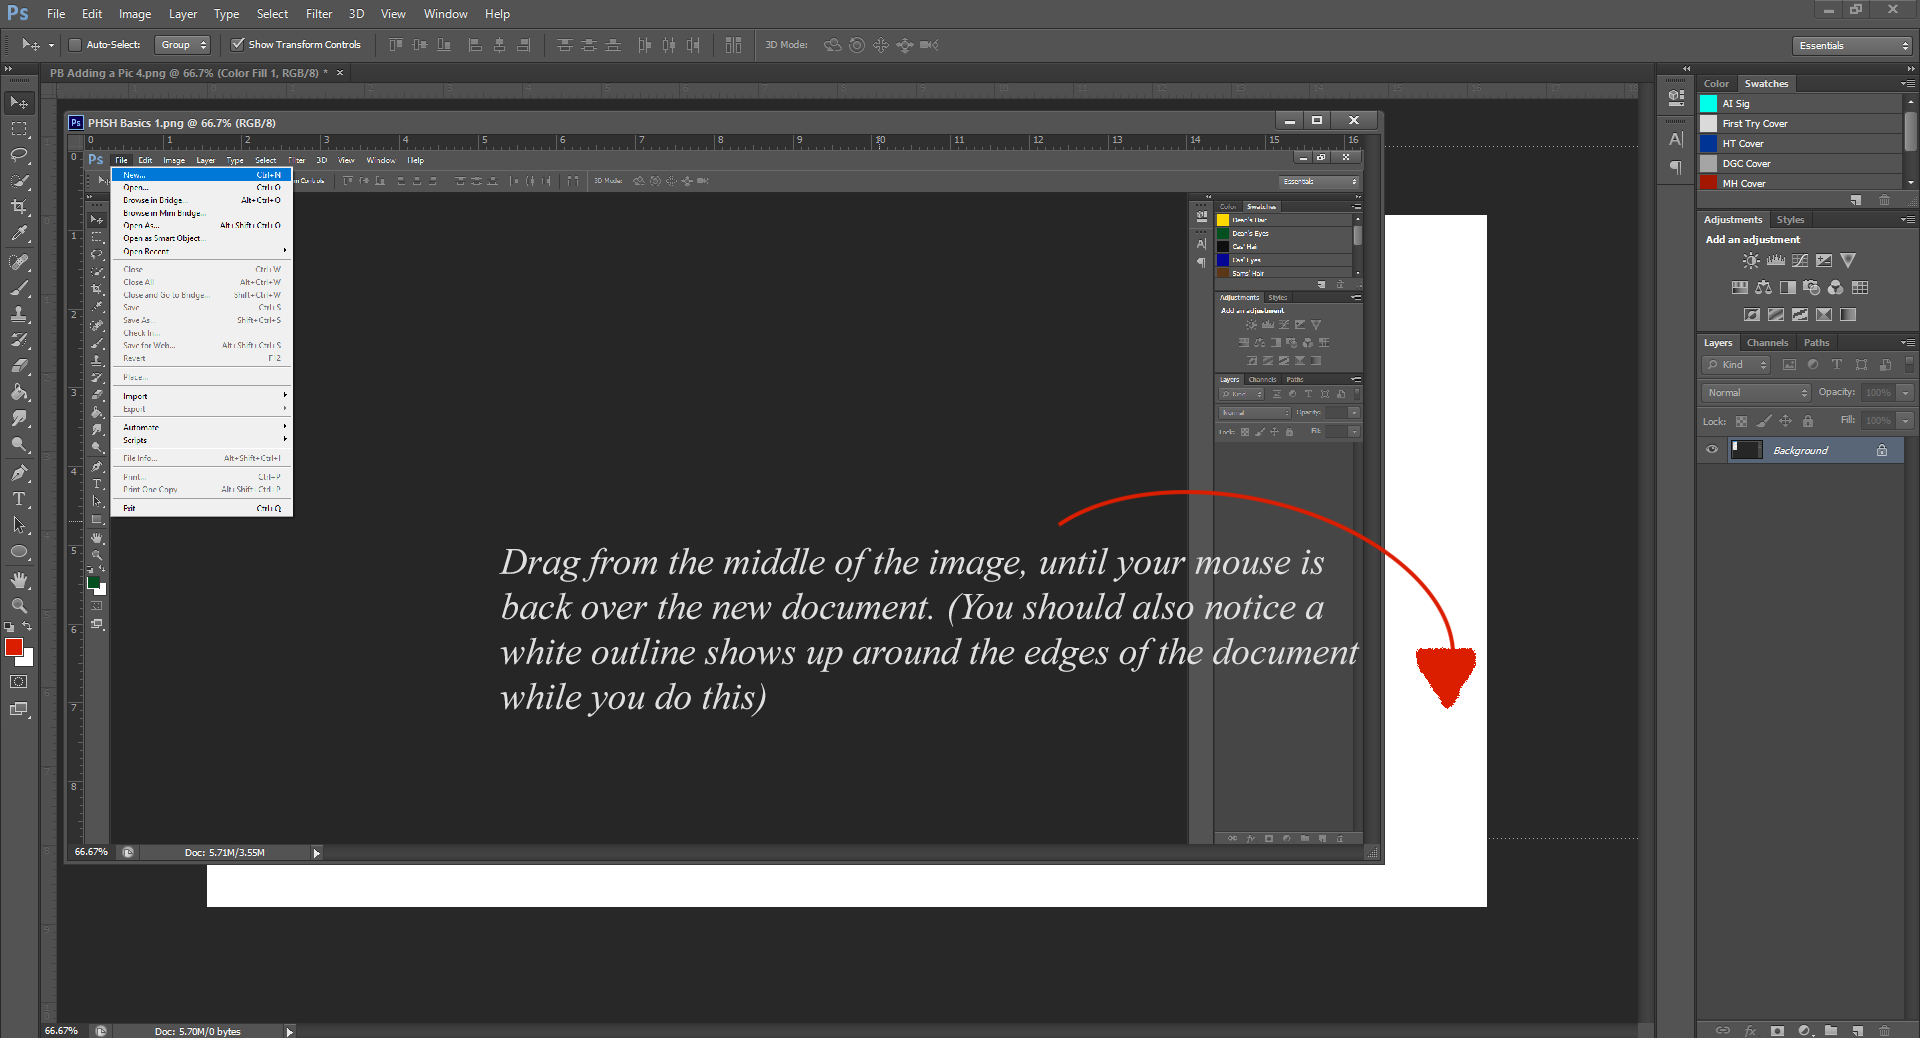 AterImber.com - Writing Tips - PHSH Tutorial Intro - Adding A Picture 5 - Photoshop